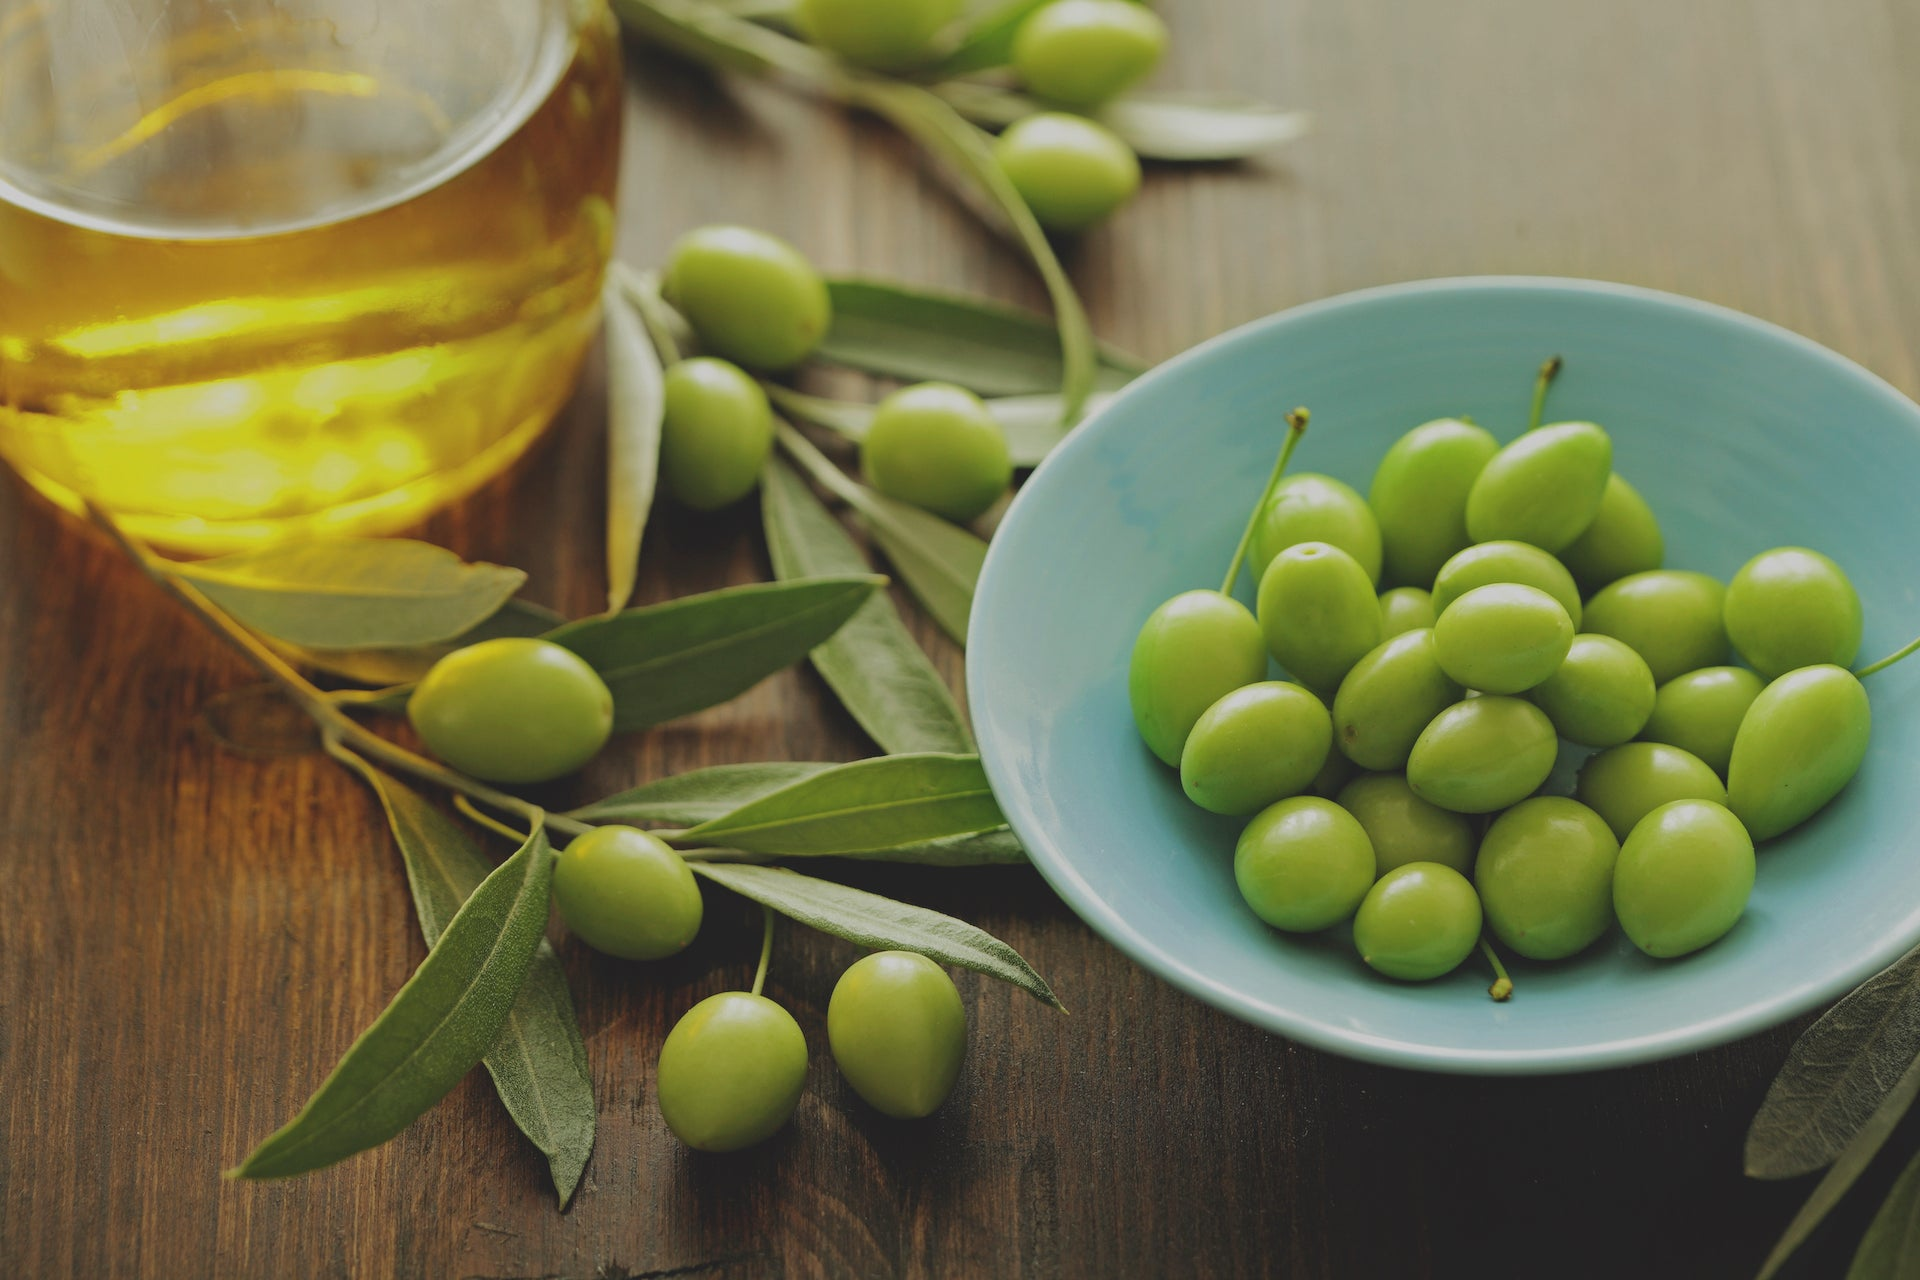 Vitamin | The Science of Olives